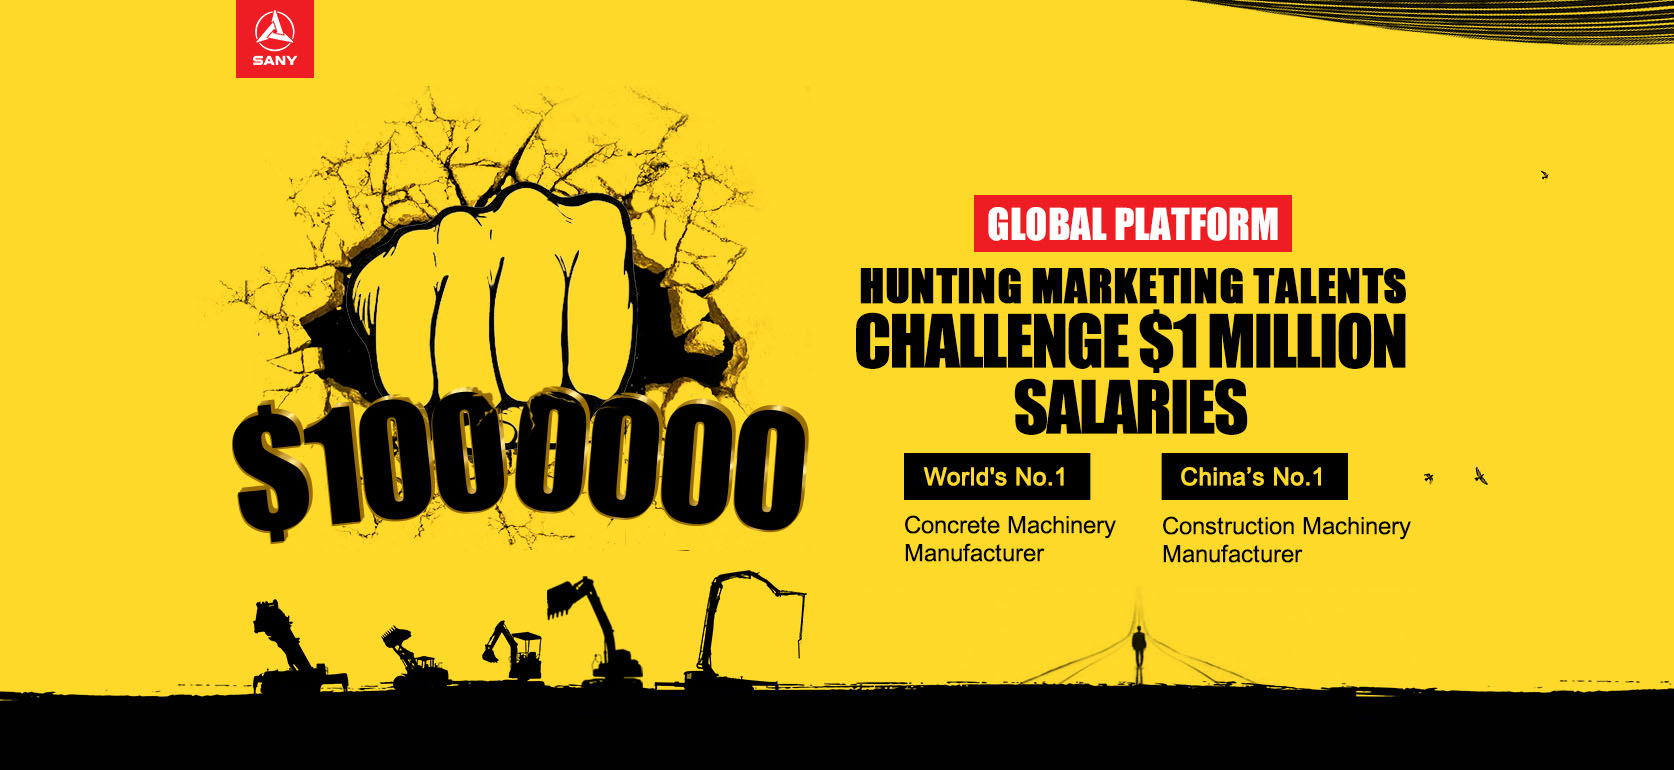 Hunting marketing talents, Challenge $1 million salaries